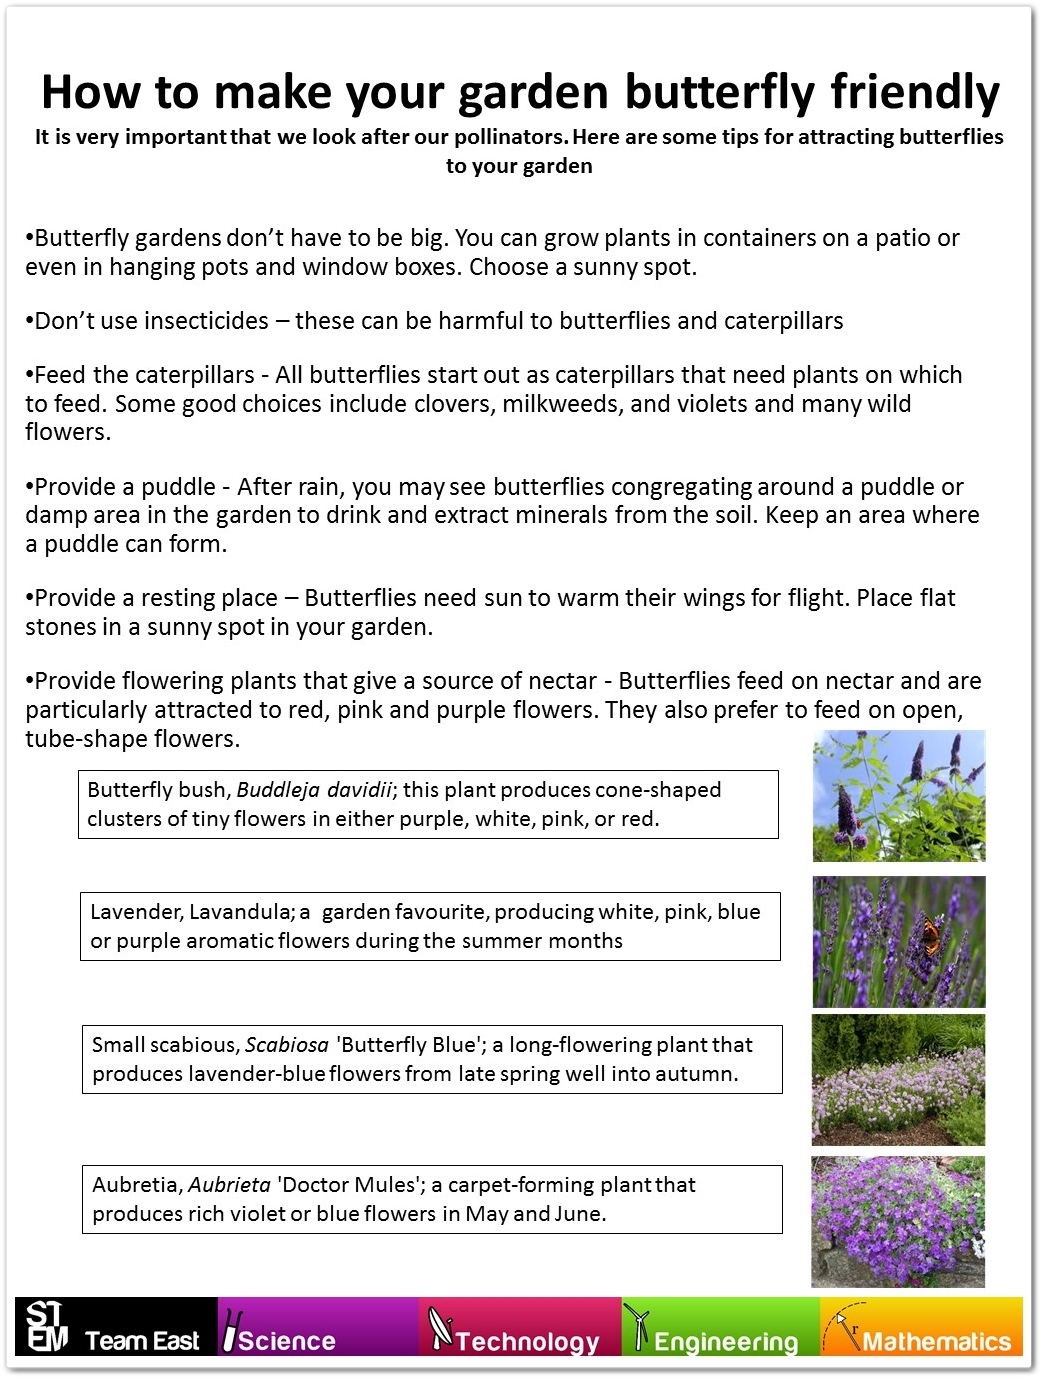 how-to-make-your-garden-butterfly-friendly_2